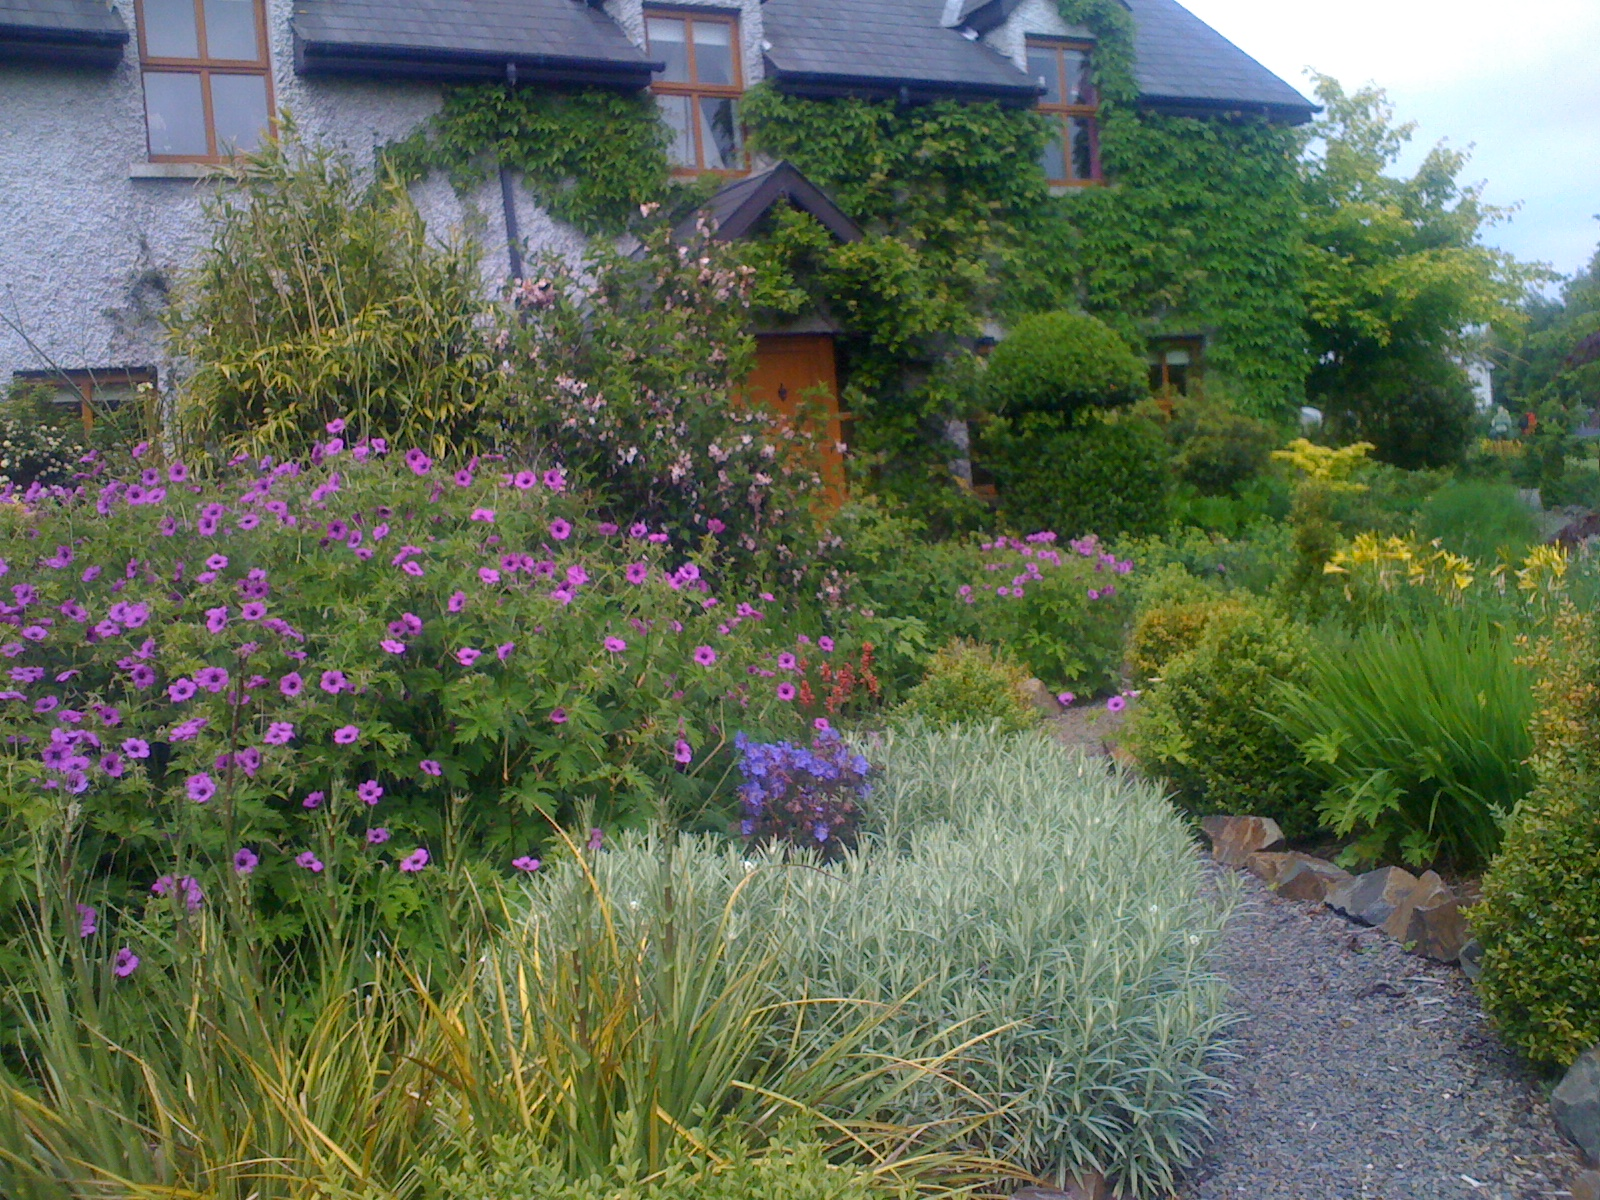 Kilmurry Nursery Garden by Ciaran Burke